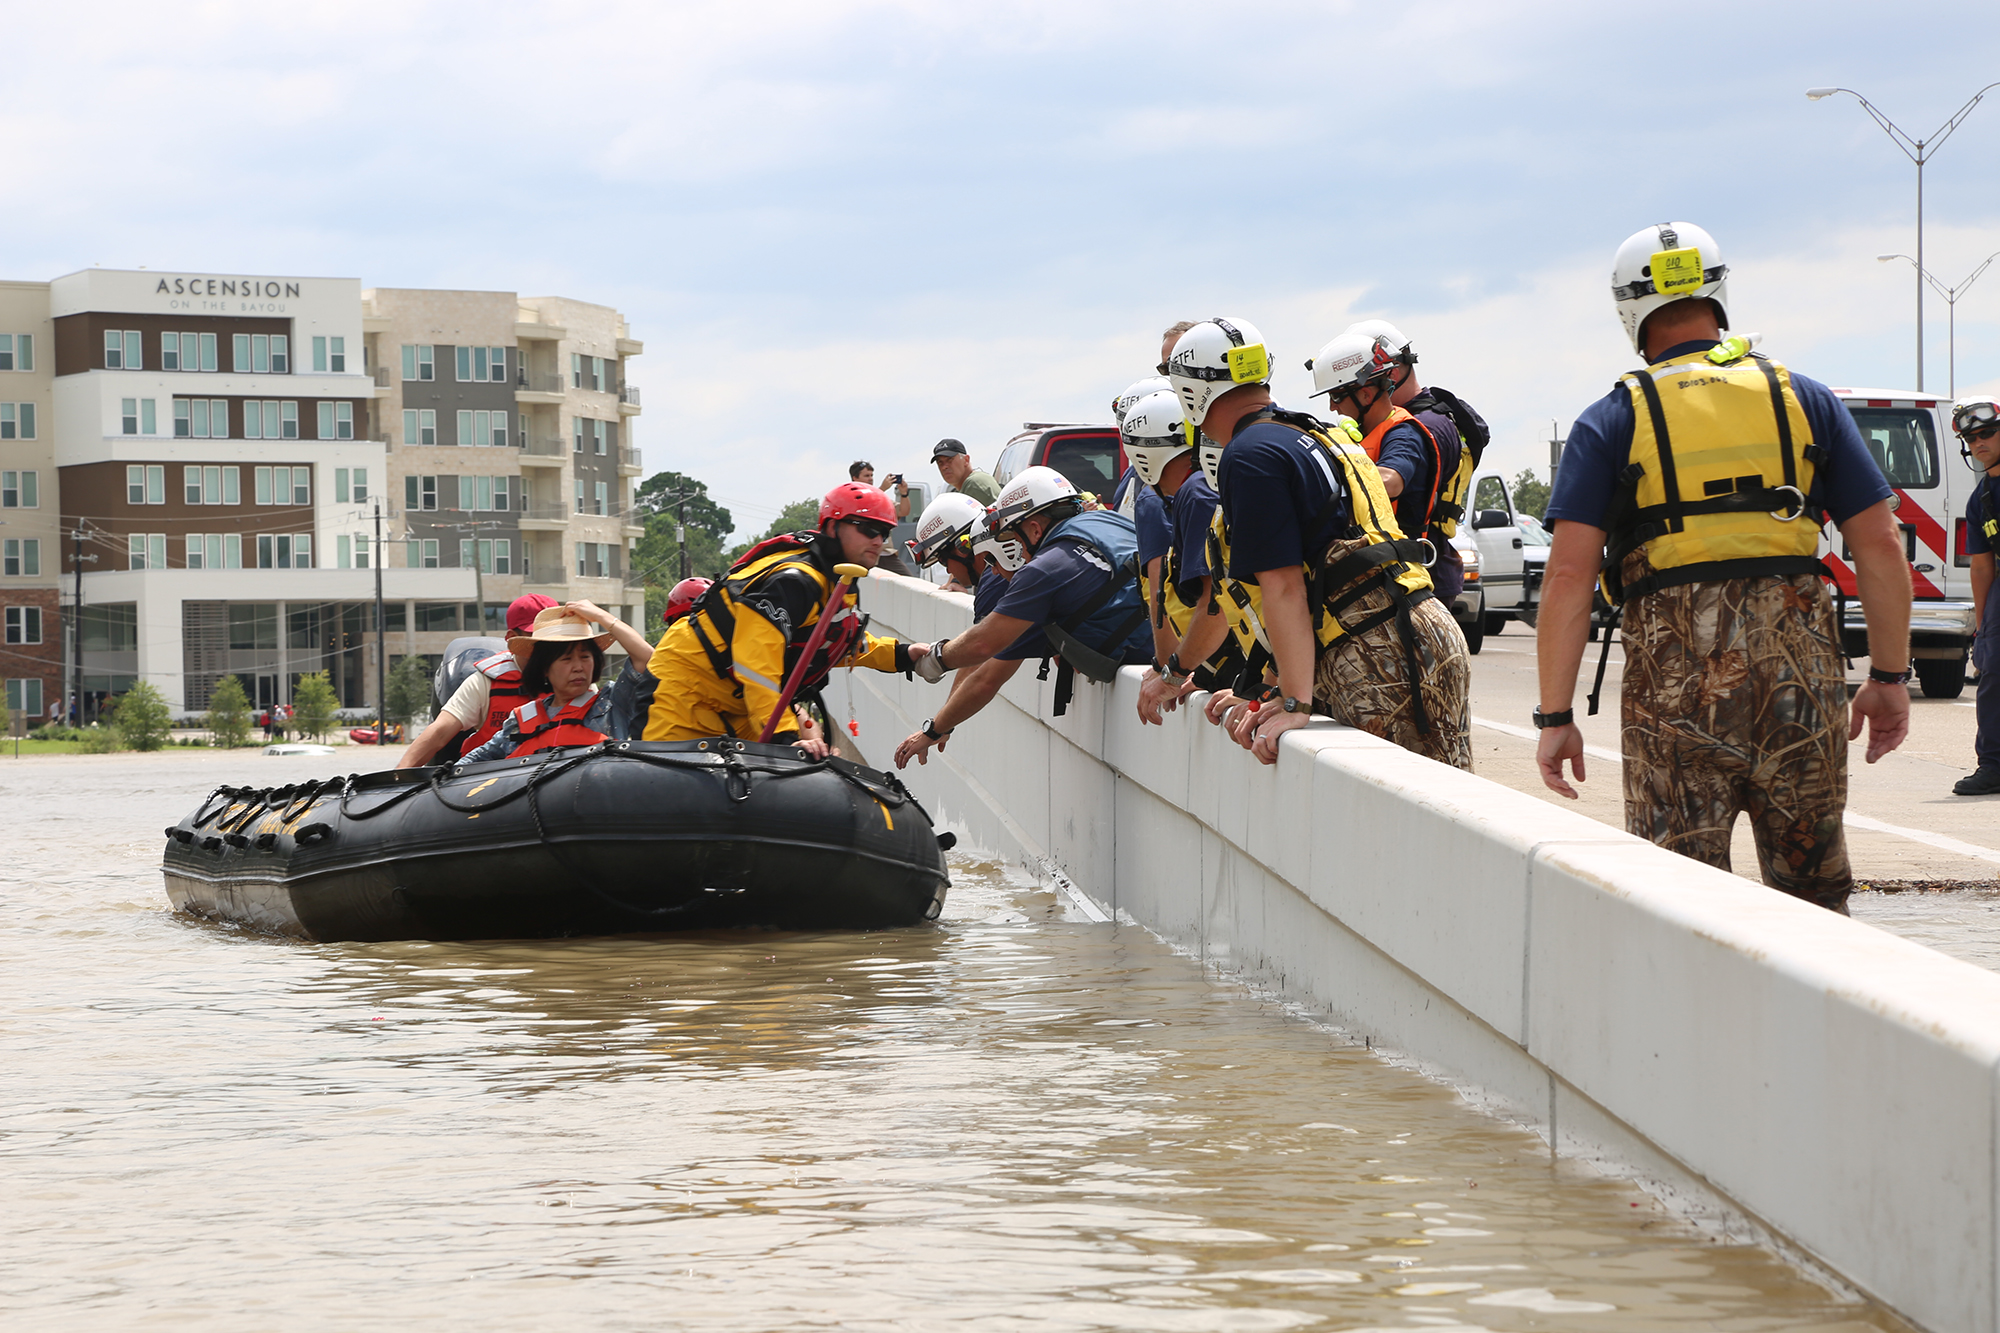 Members of FEMA's Urban Search and Rescue Nebraska Task Force One (NE-TF1) perform one of many water rescues in the aftermath of Hurricane Harvey